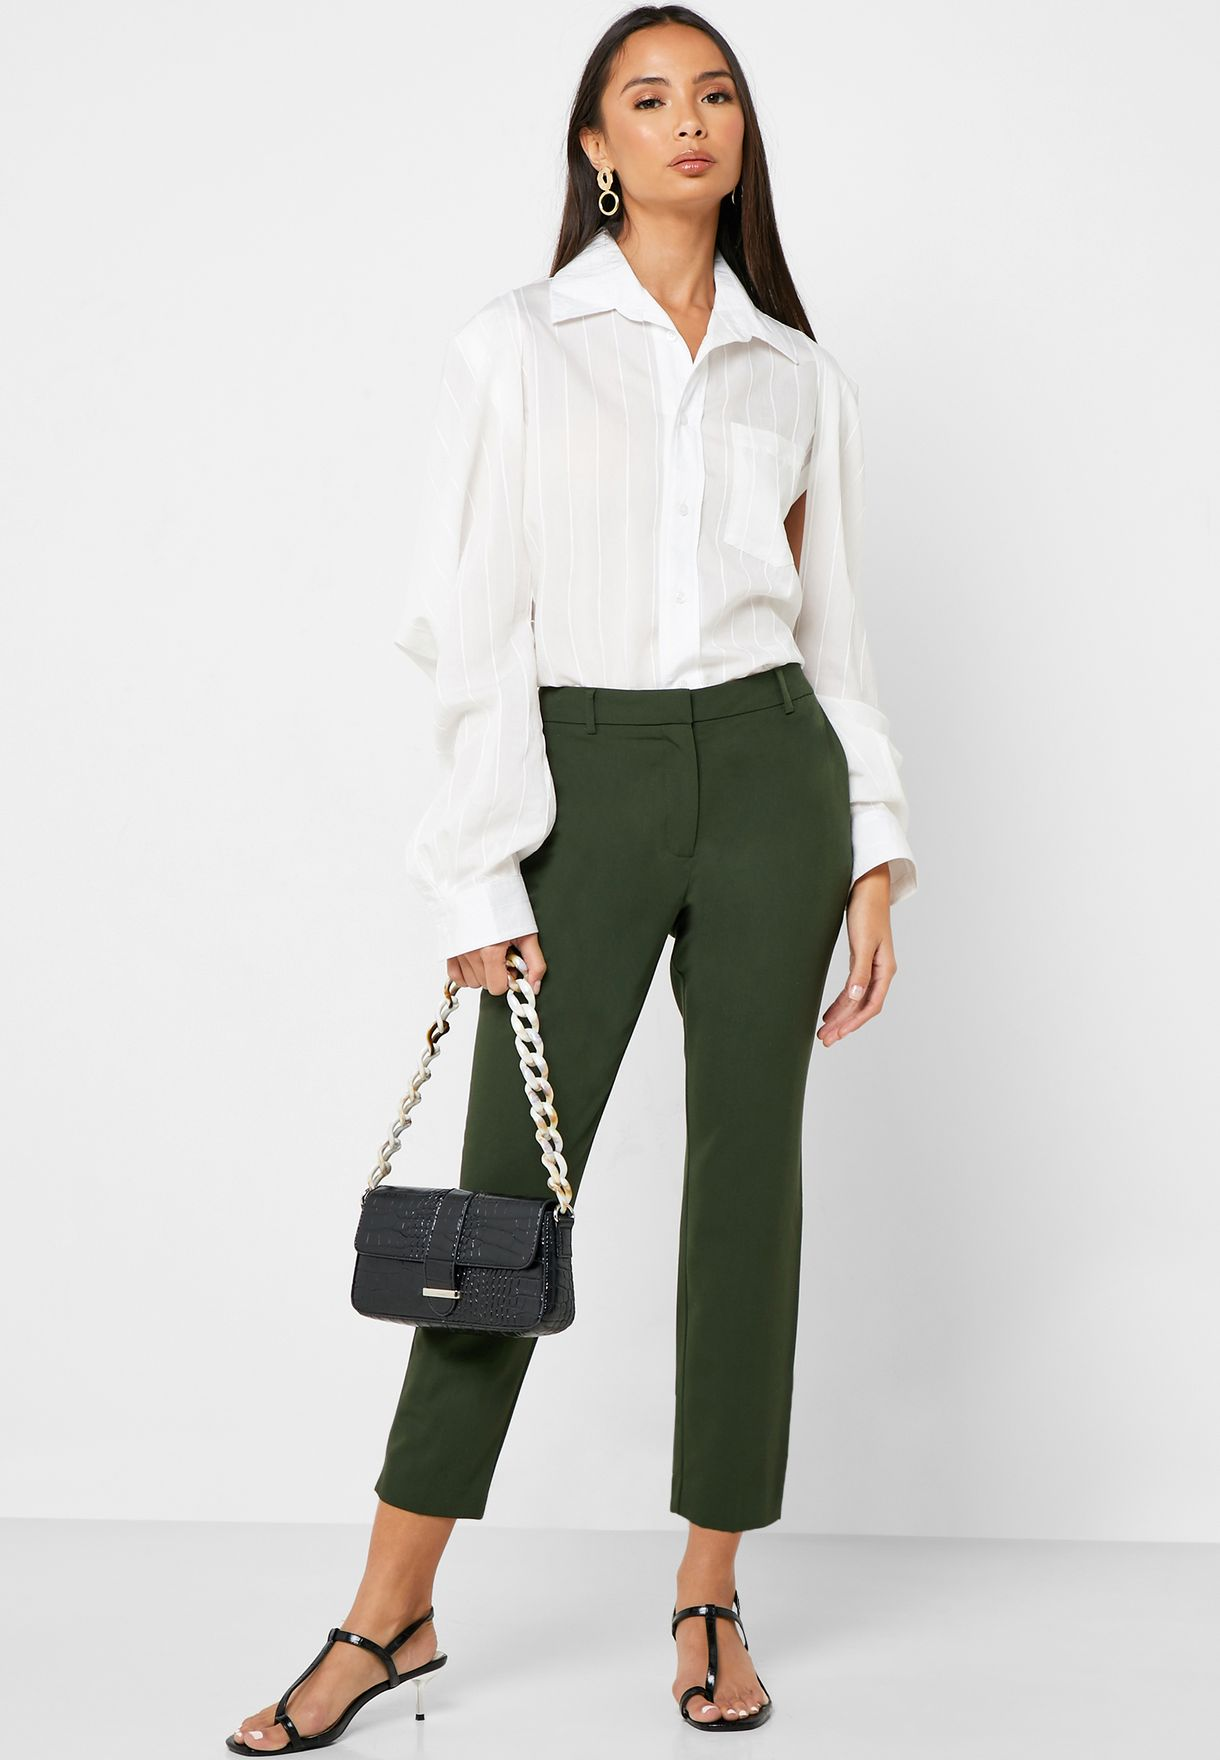 Naples Ankle Grazer Pants